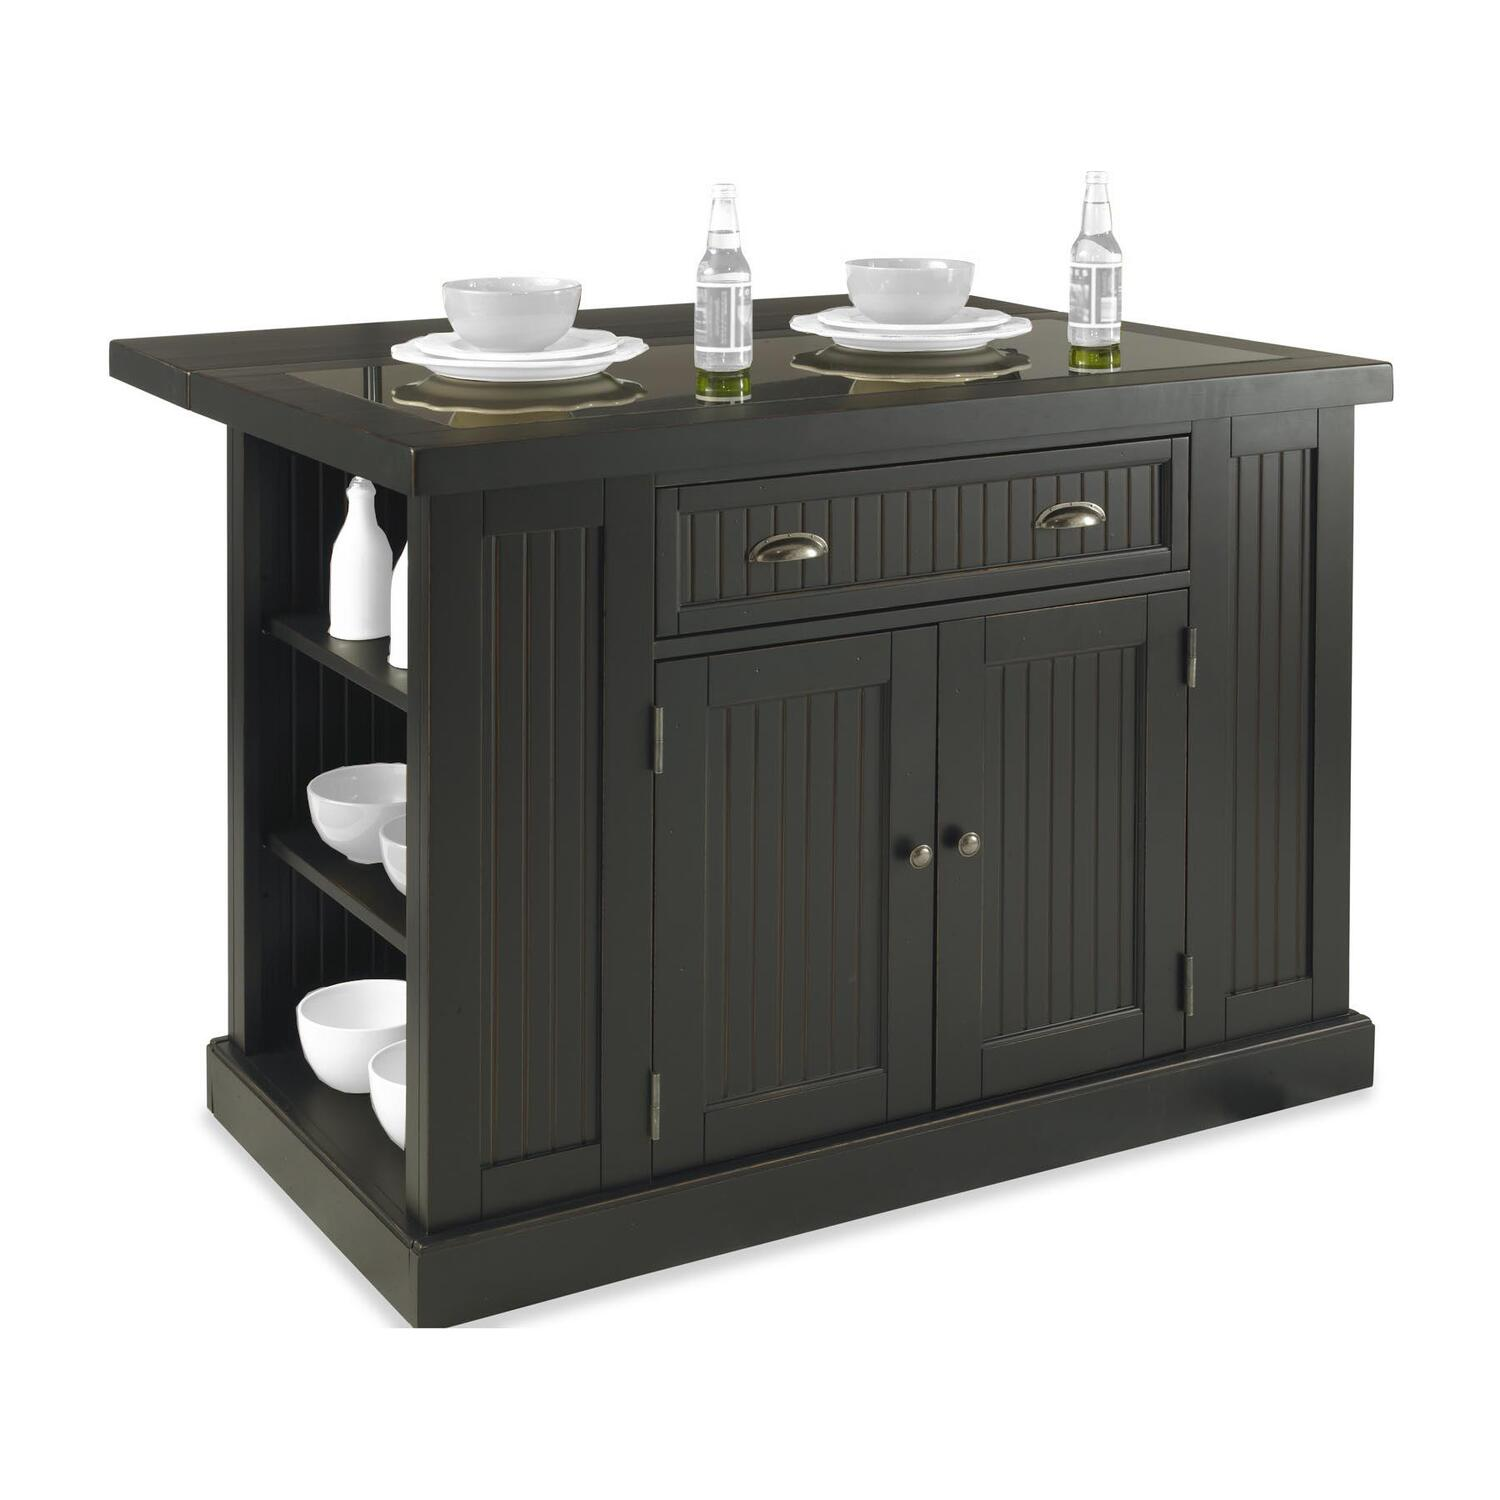 Nantucket Distressed White Finish Kitchen Island By Home Styles Nantucket Kitchen Island Distressed Finish | Ojcommerce